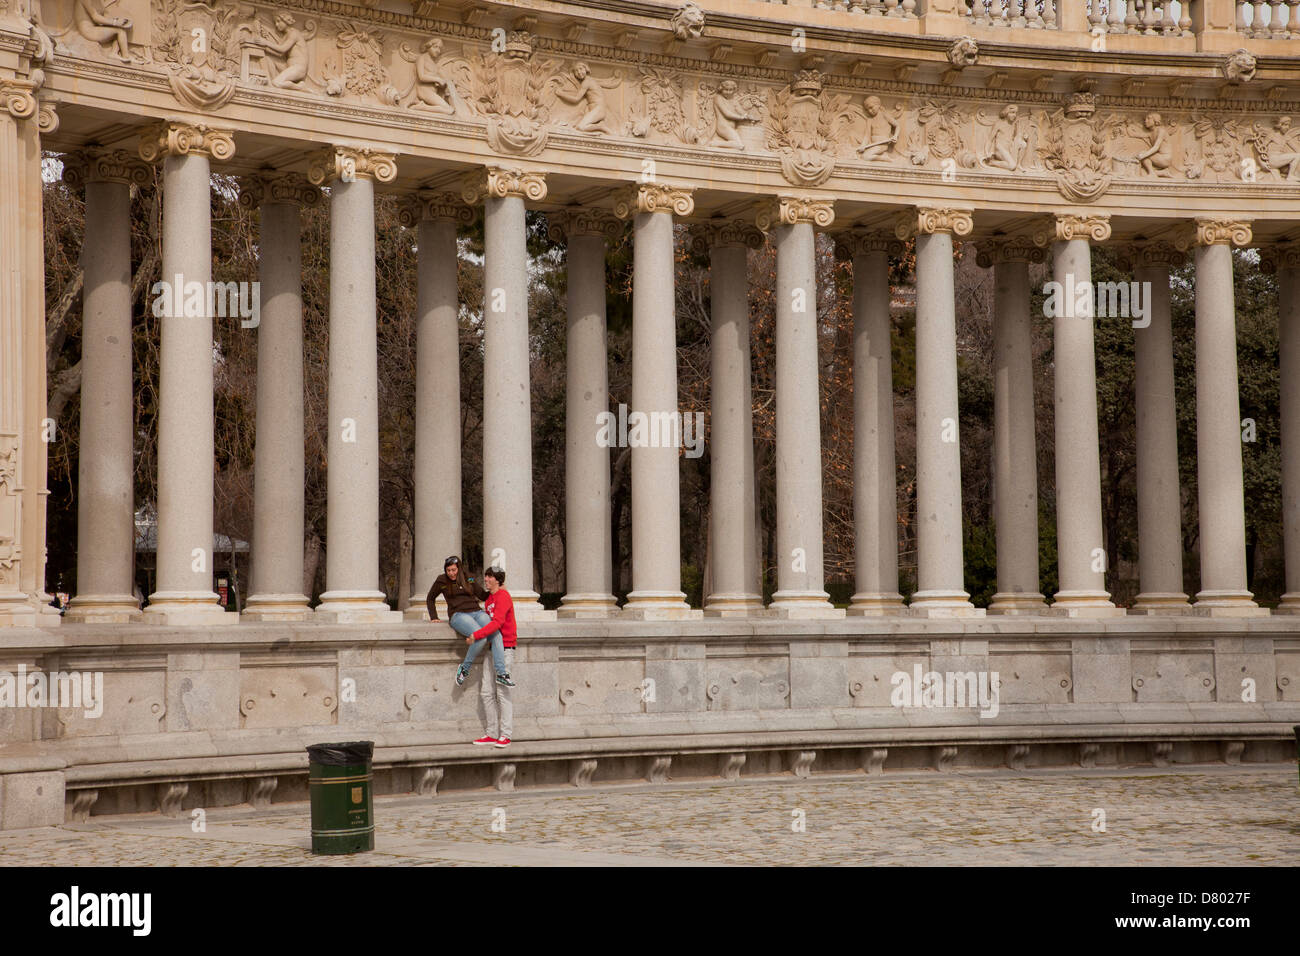 olumns of the monument to King Alfonso XII at the Park Parque del Retiro in the spanish capital Madrid, Spain, Europe - Stock Image